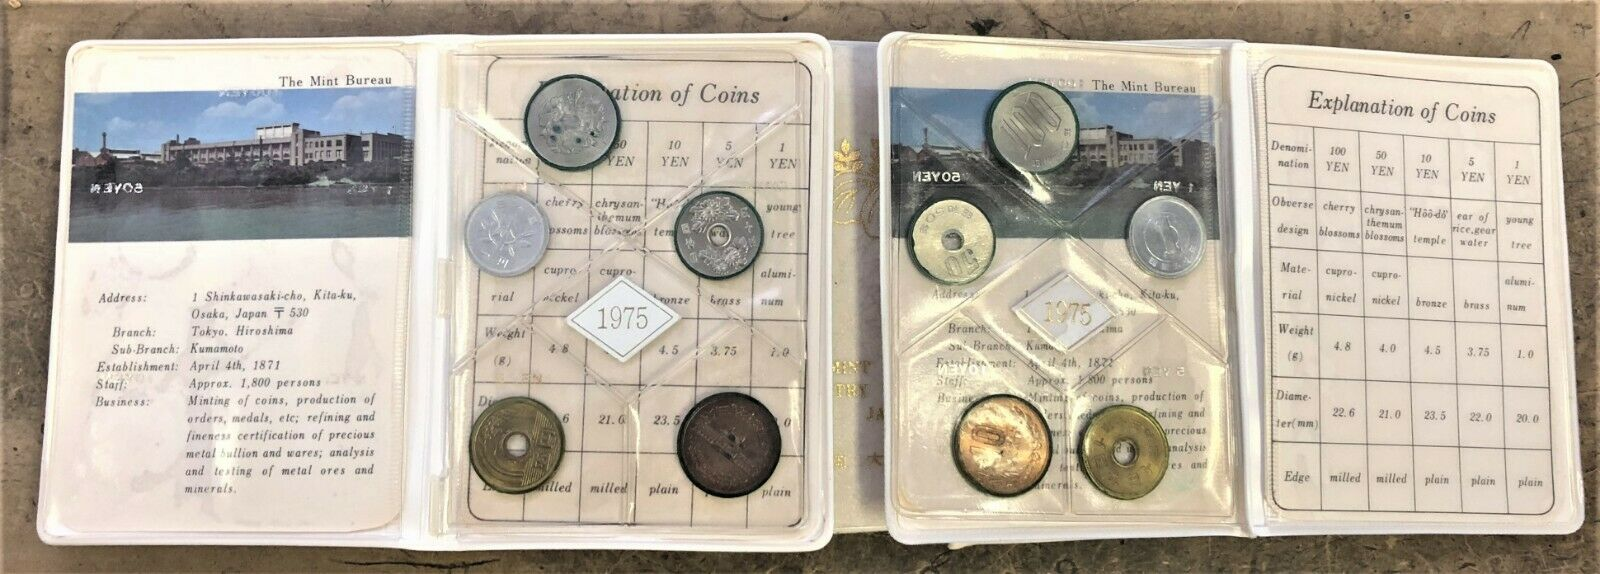 WHOLESALE - 20 JAPAN FOLIOS PICTURE & INFO with 5 DIFFERENT YEN COINS DATED 1975